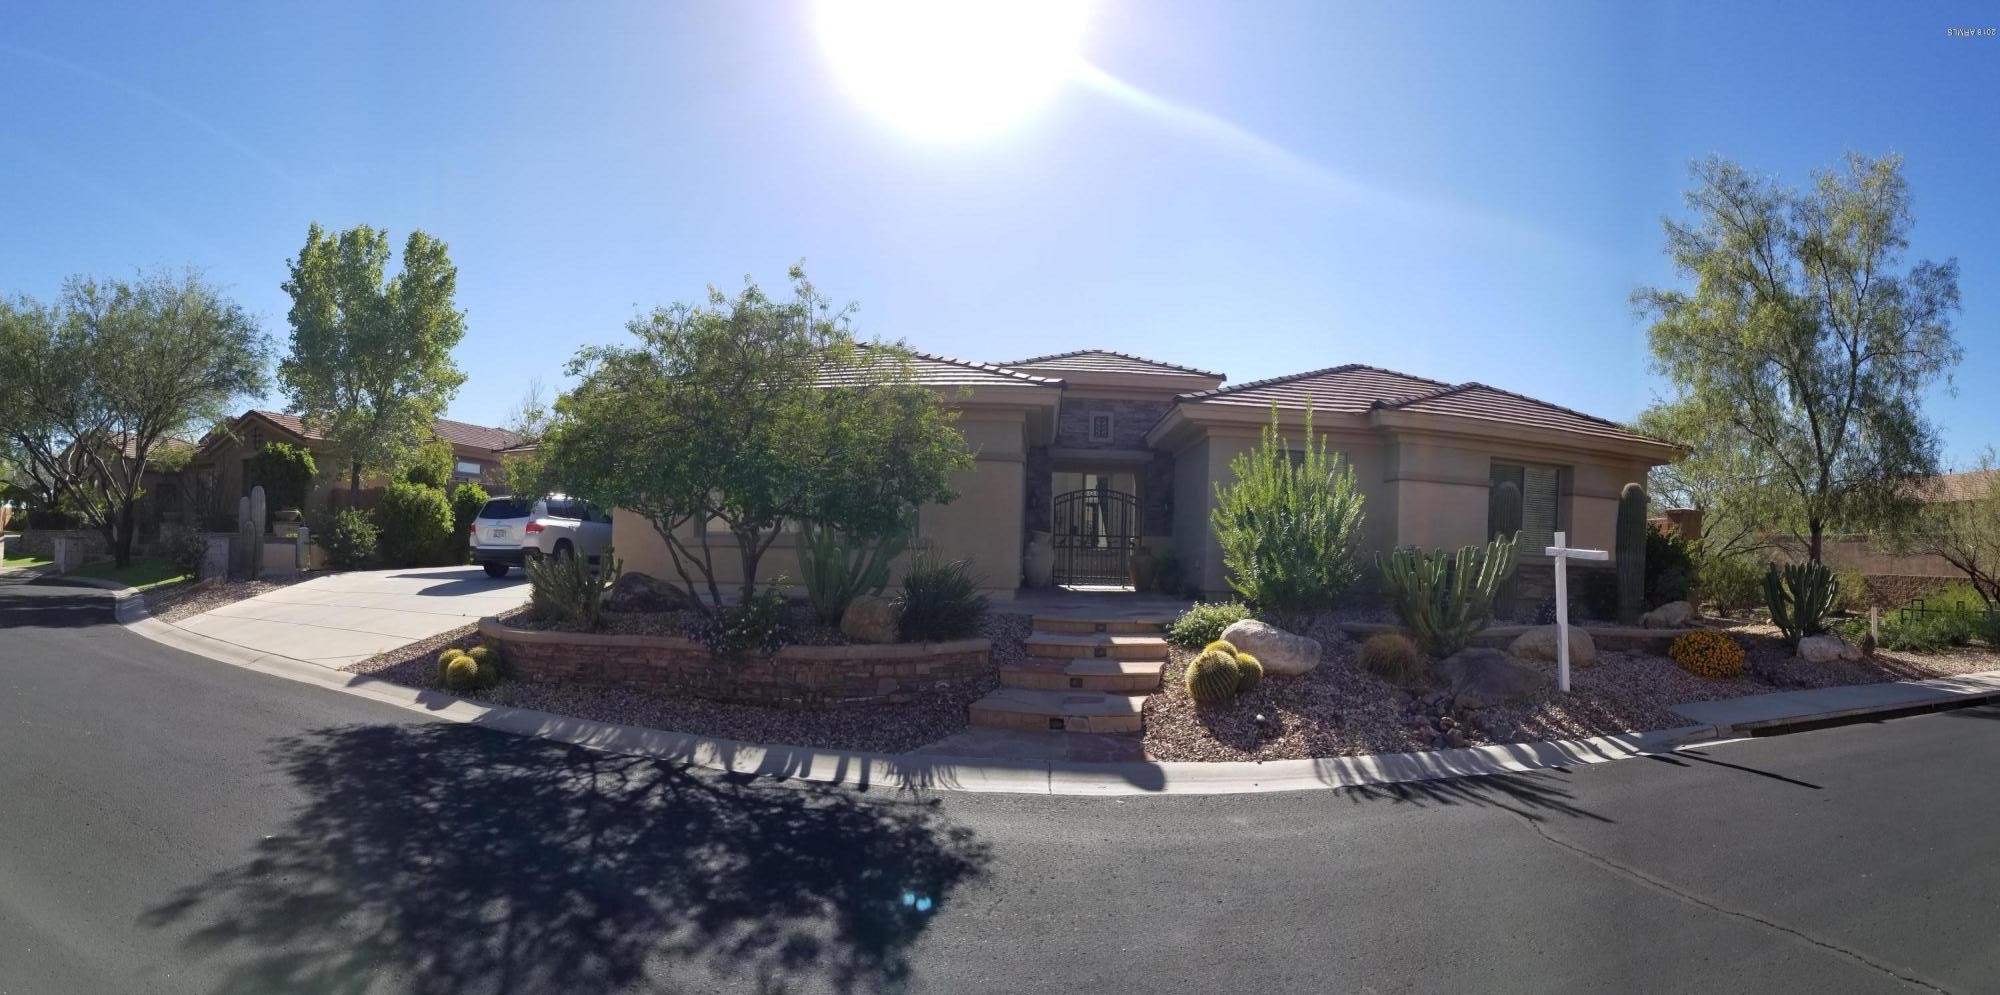 MLS 5849851 41710 N LA CANTERA Drive, Anthem, AZ 85086 Anthem AZ Eco-Friendly